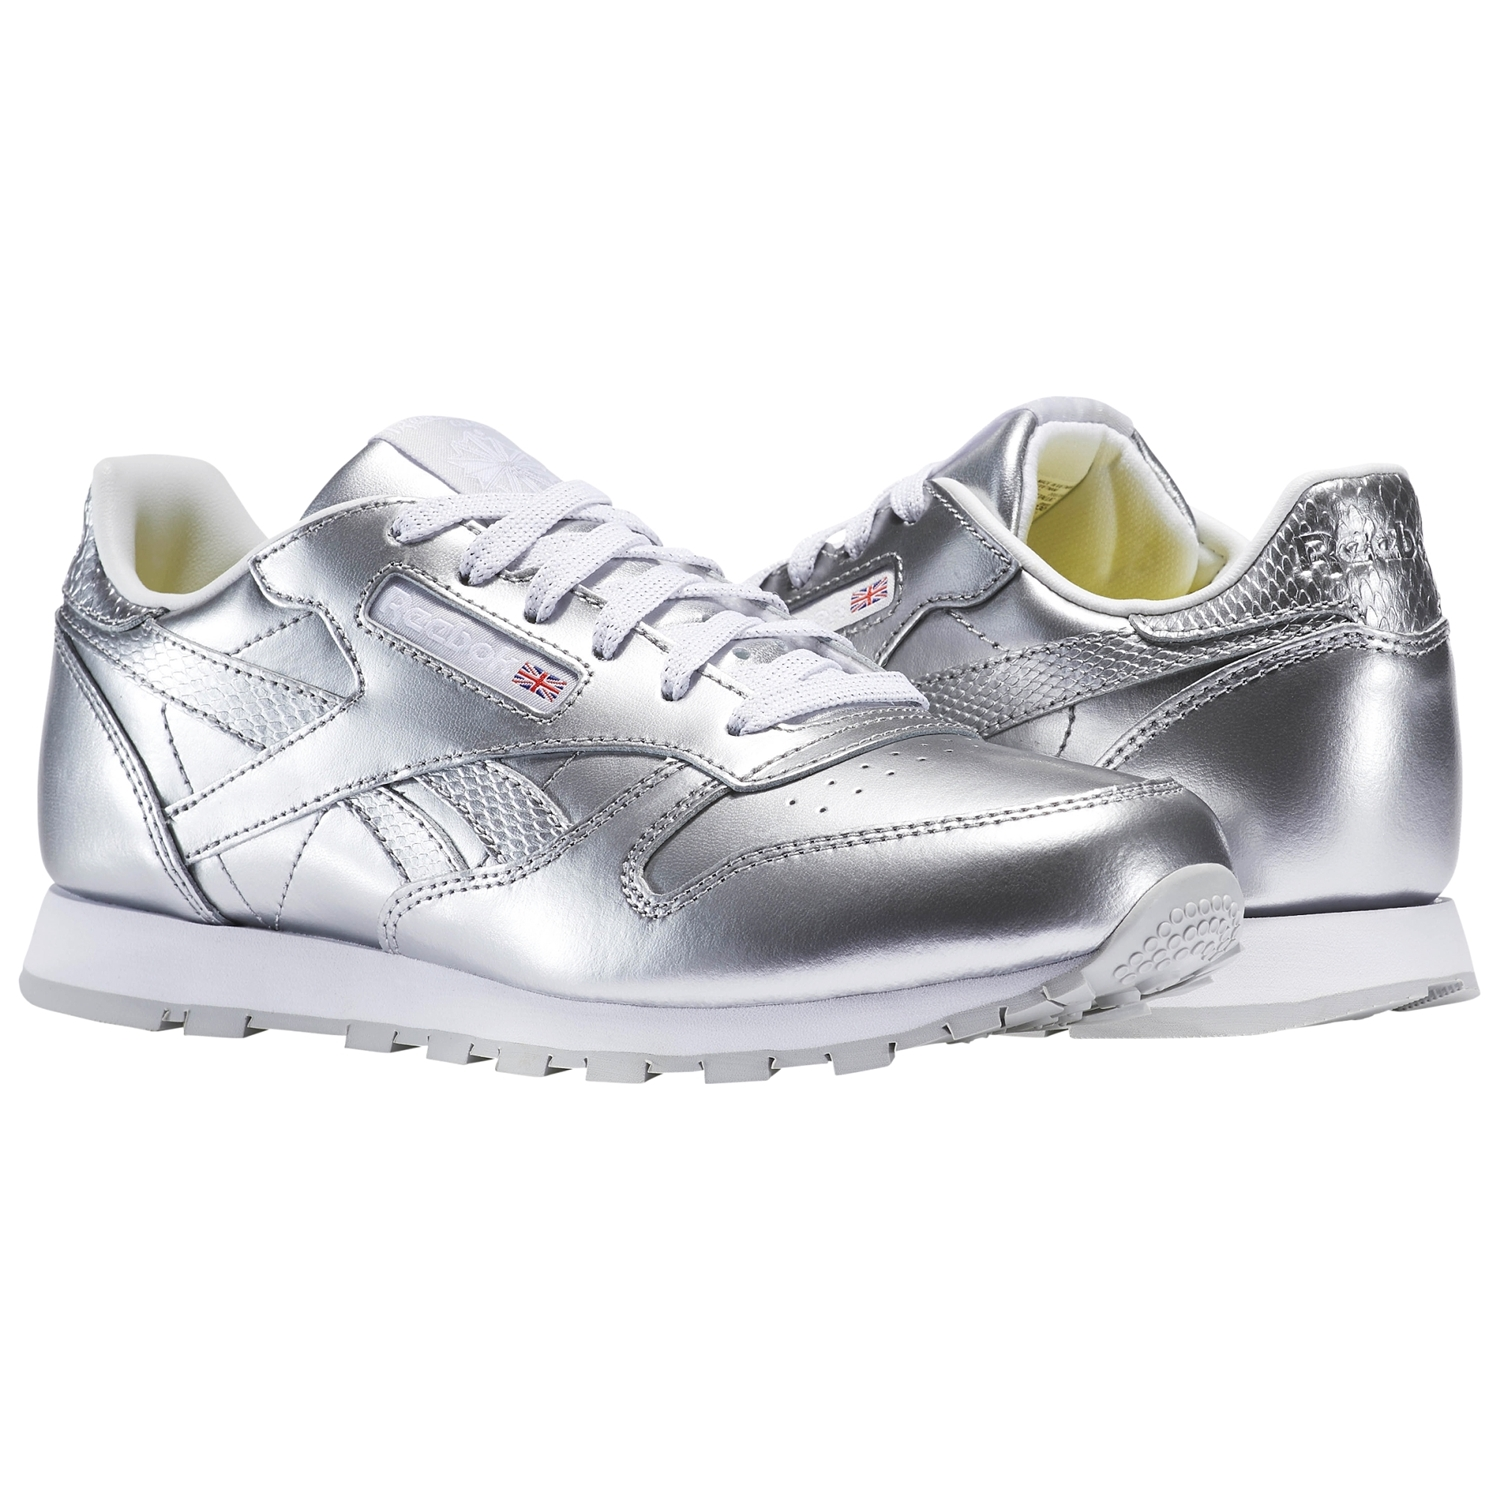 0ef5c669b8b Reebok Classic Leather Metallic Silver Junior